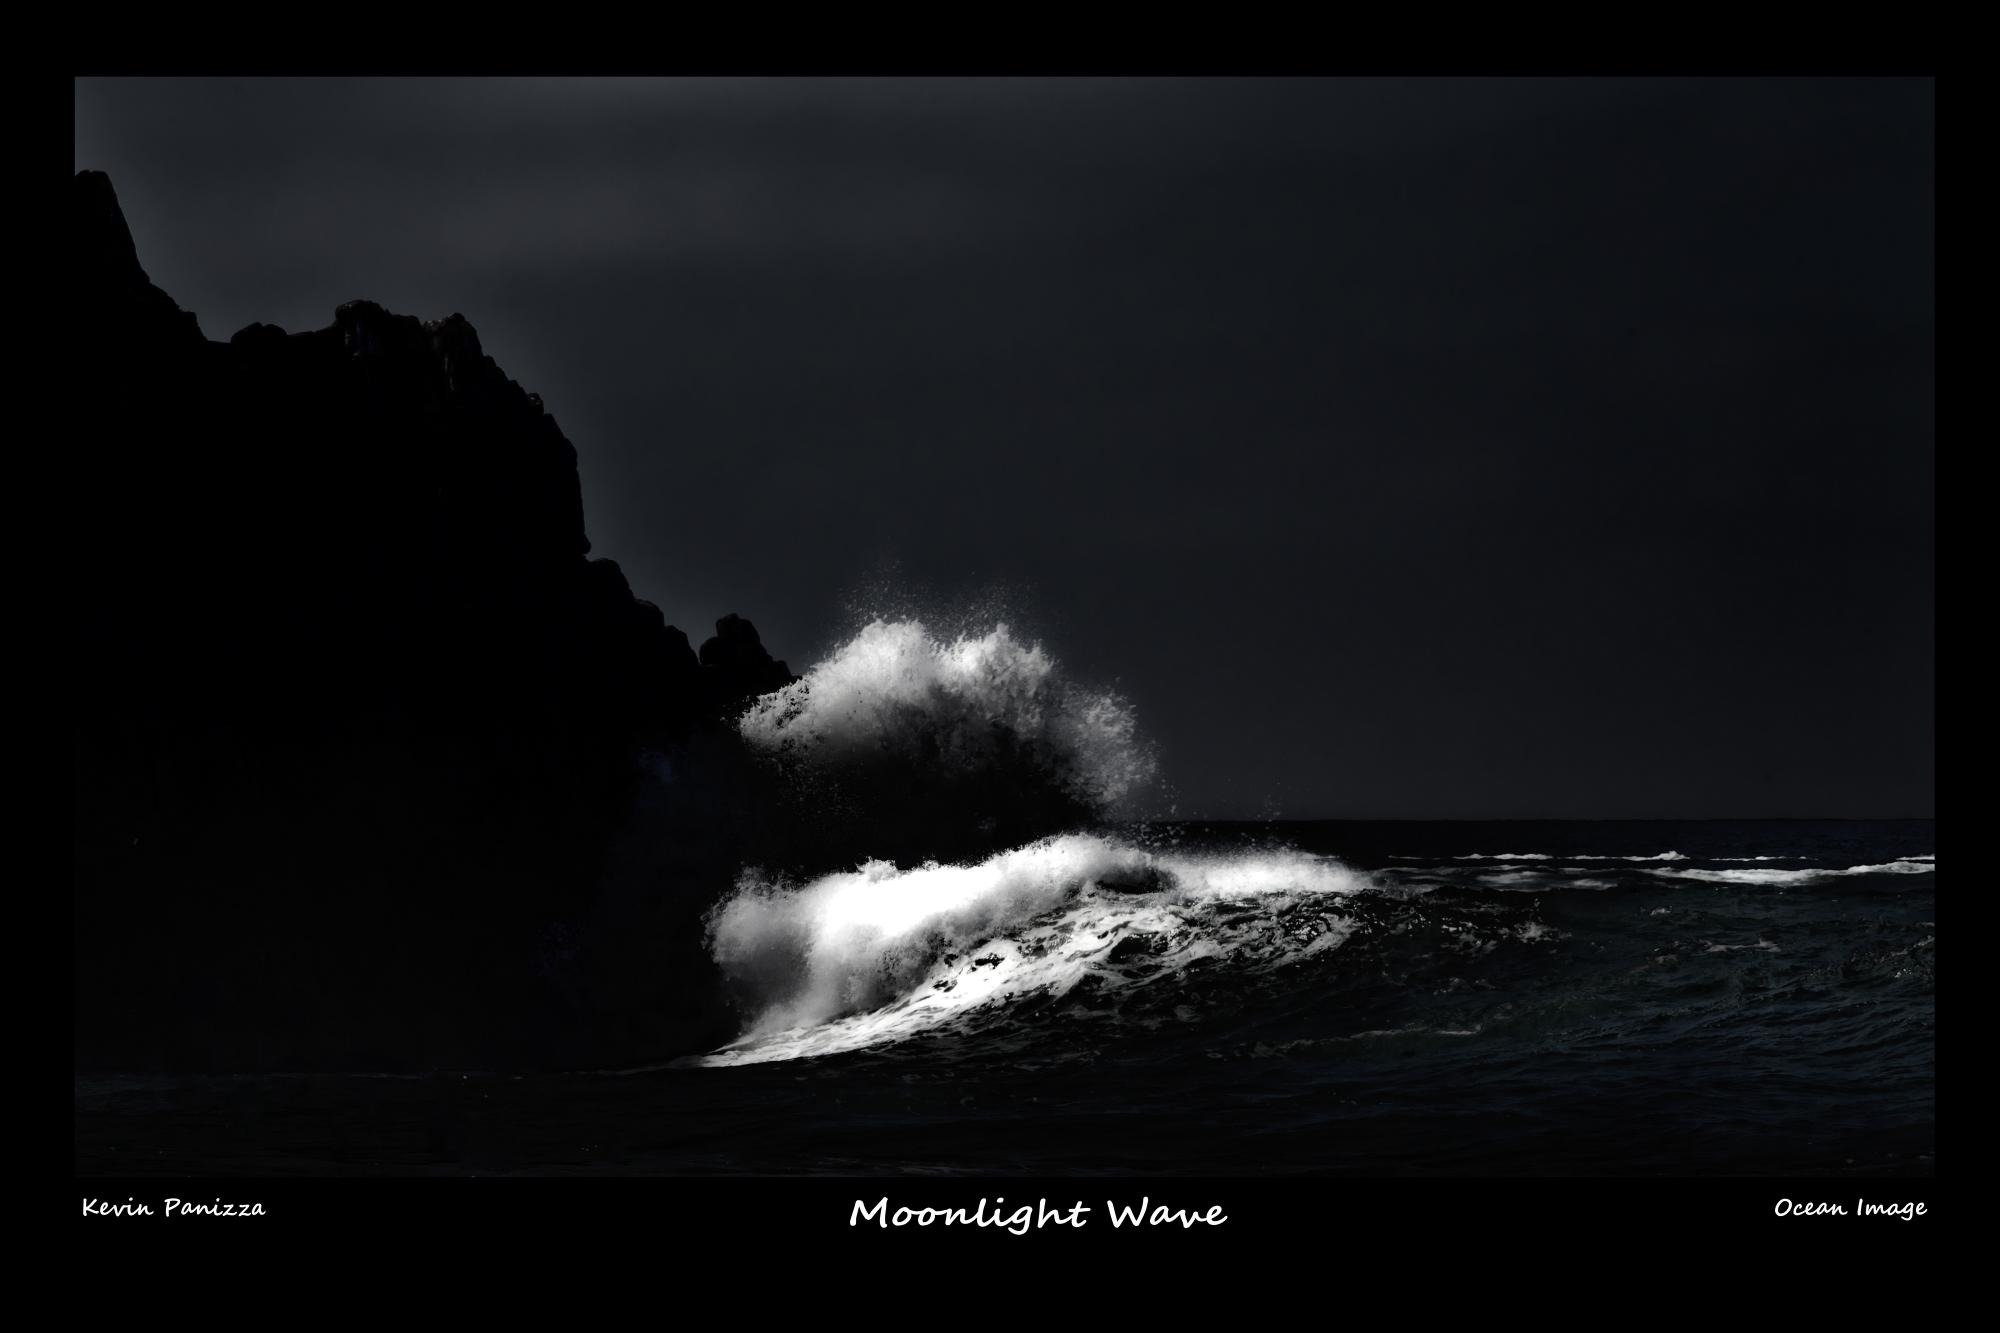 207-MOONLIGHT WAVE